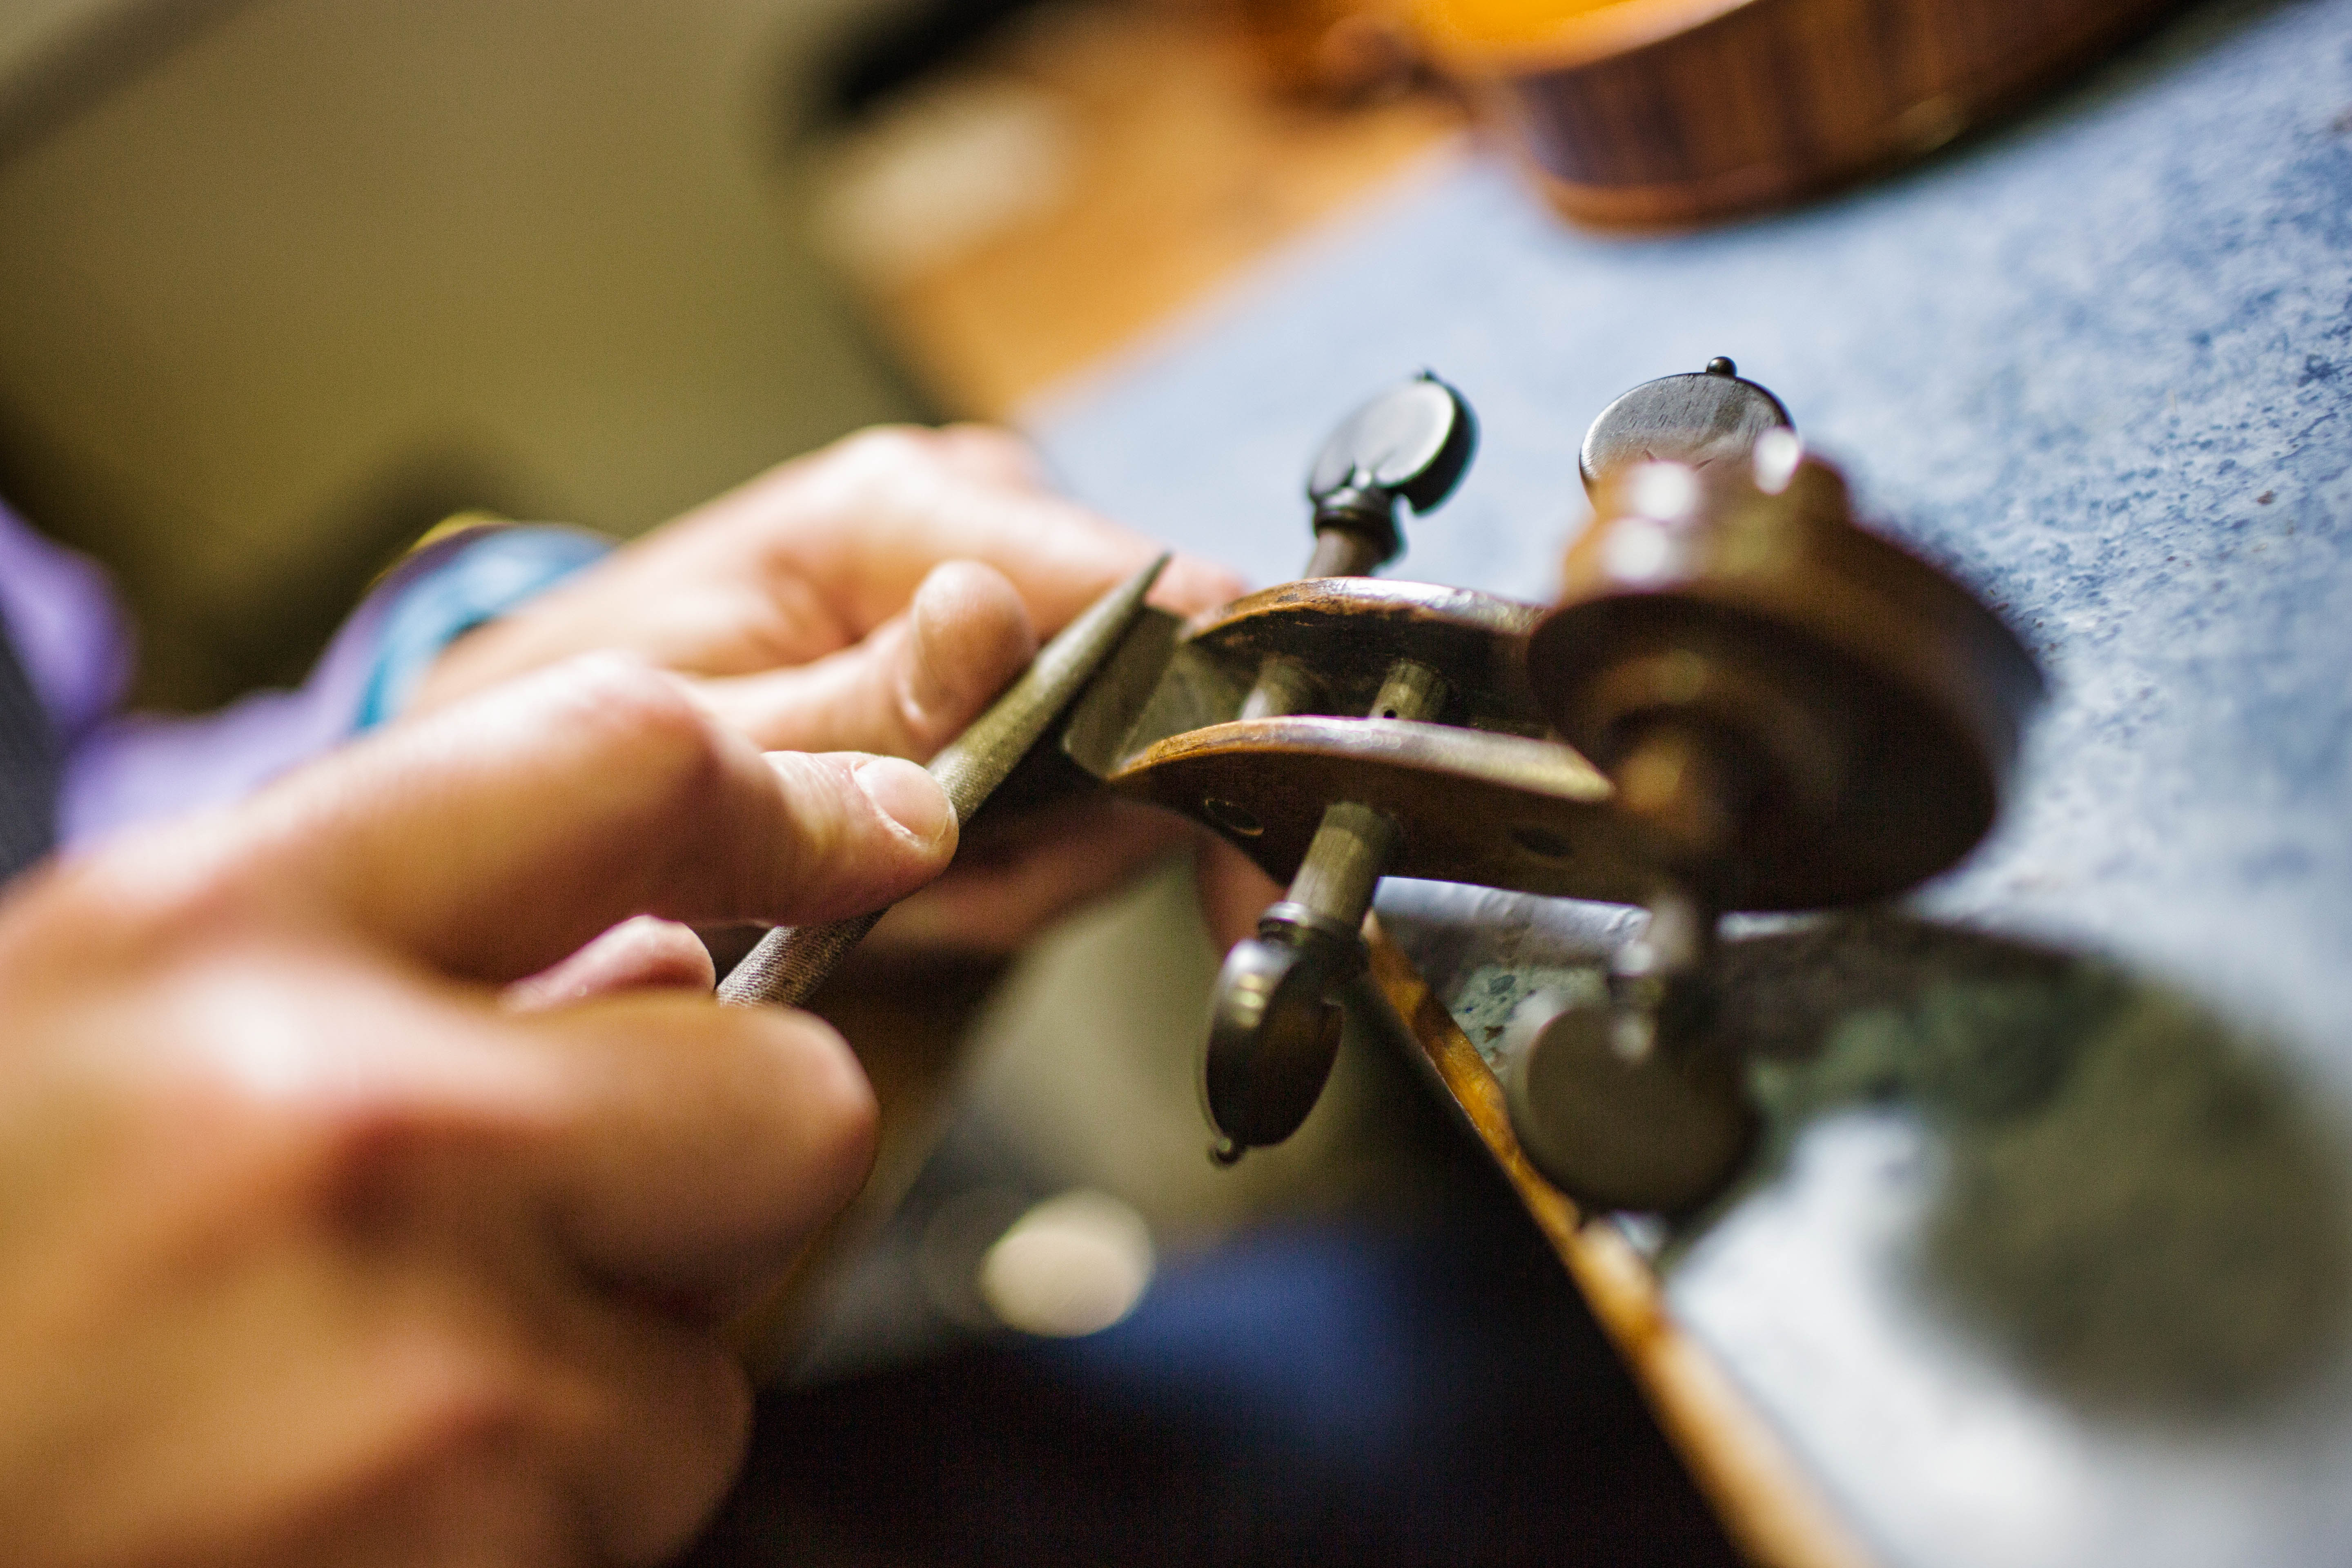 Violin maker assistant WANTED